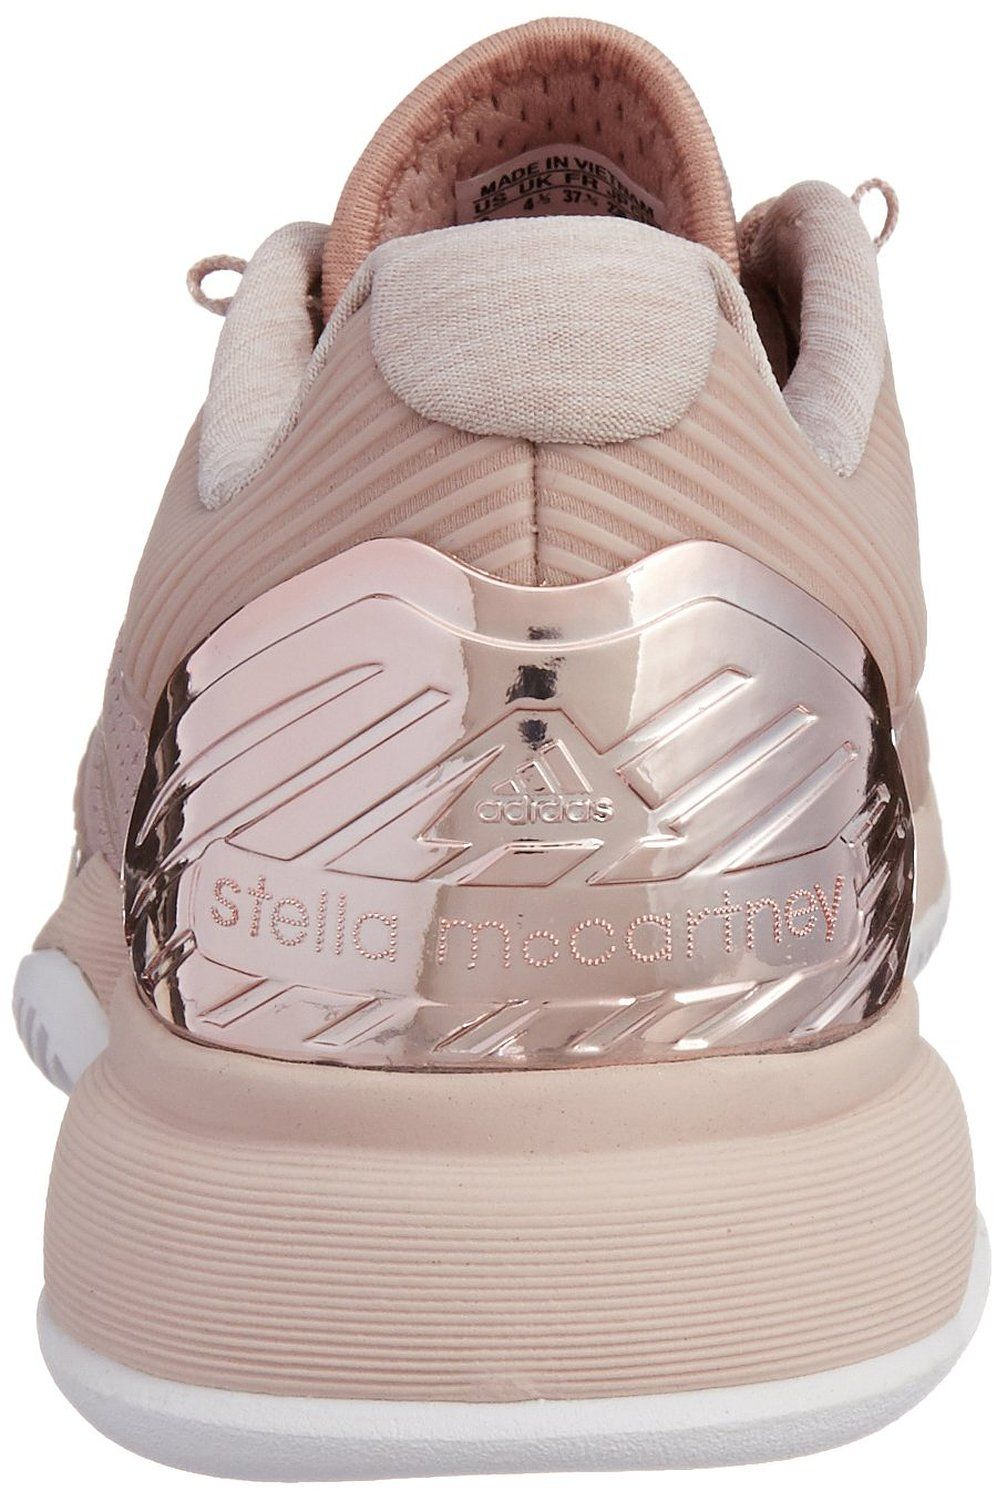 b15298b4cc93a adidas Stella McCartney Barricade Ladies Tennis Shoe